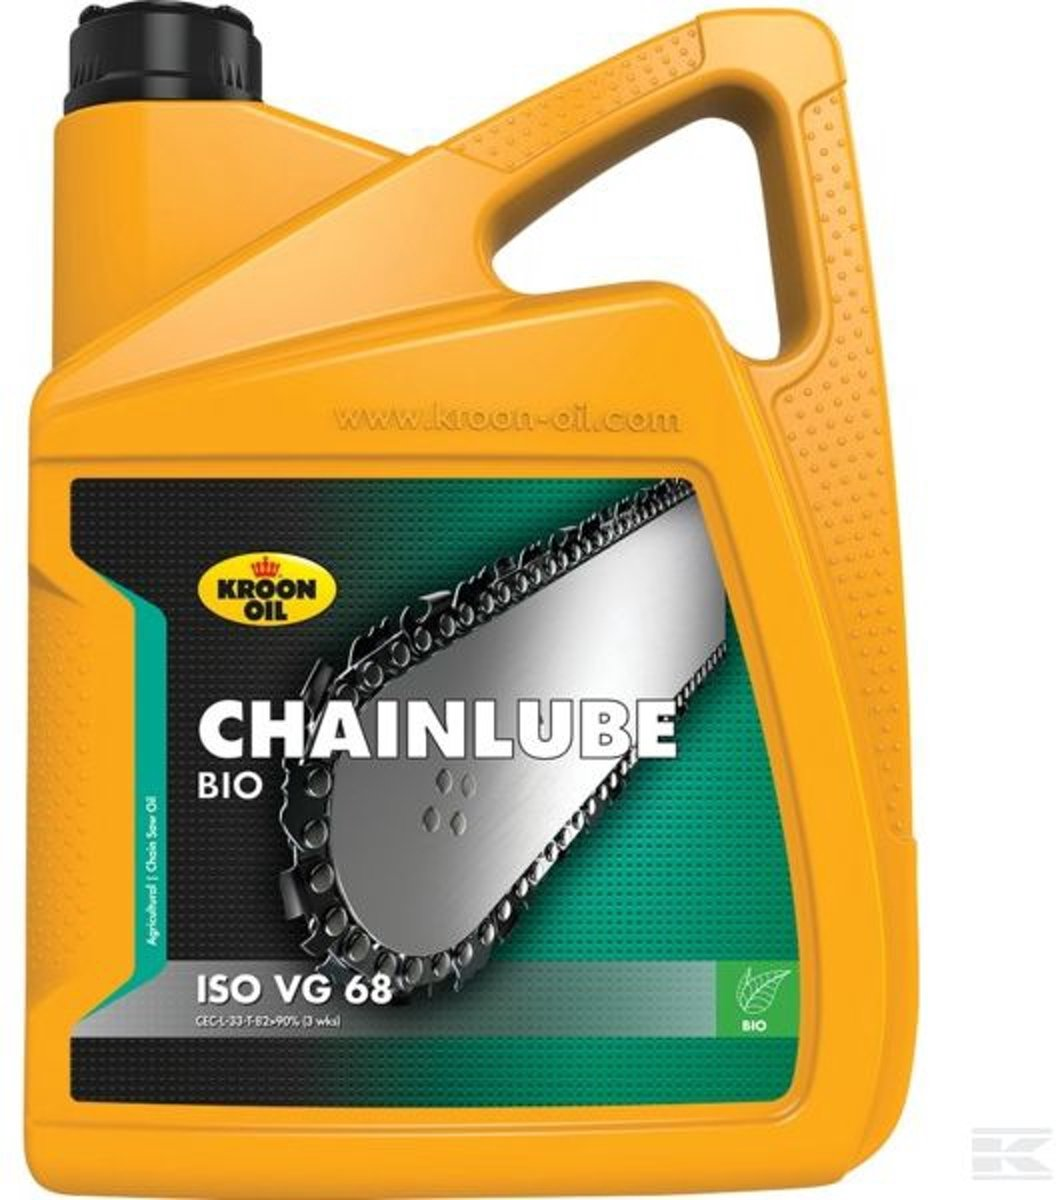 Kroon kettingzaagolie Chainlube Bio 5 ltr bus